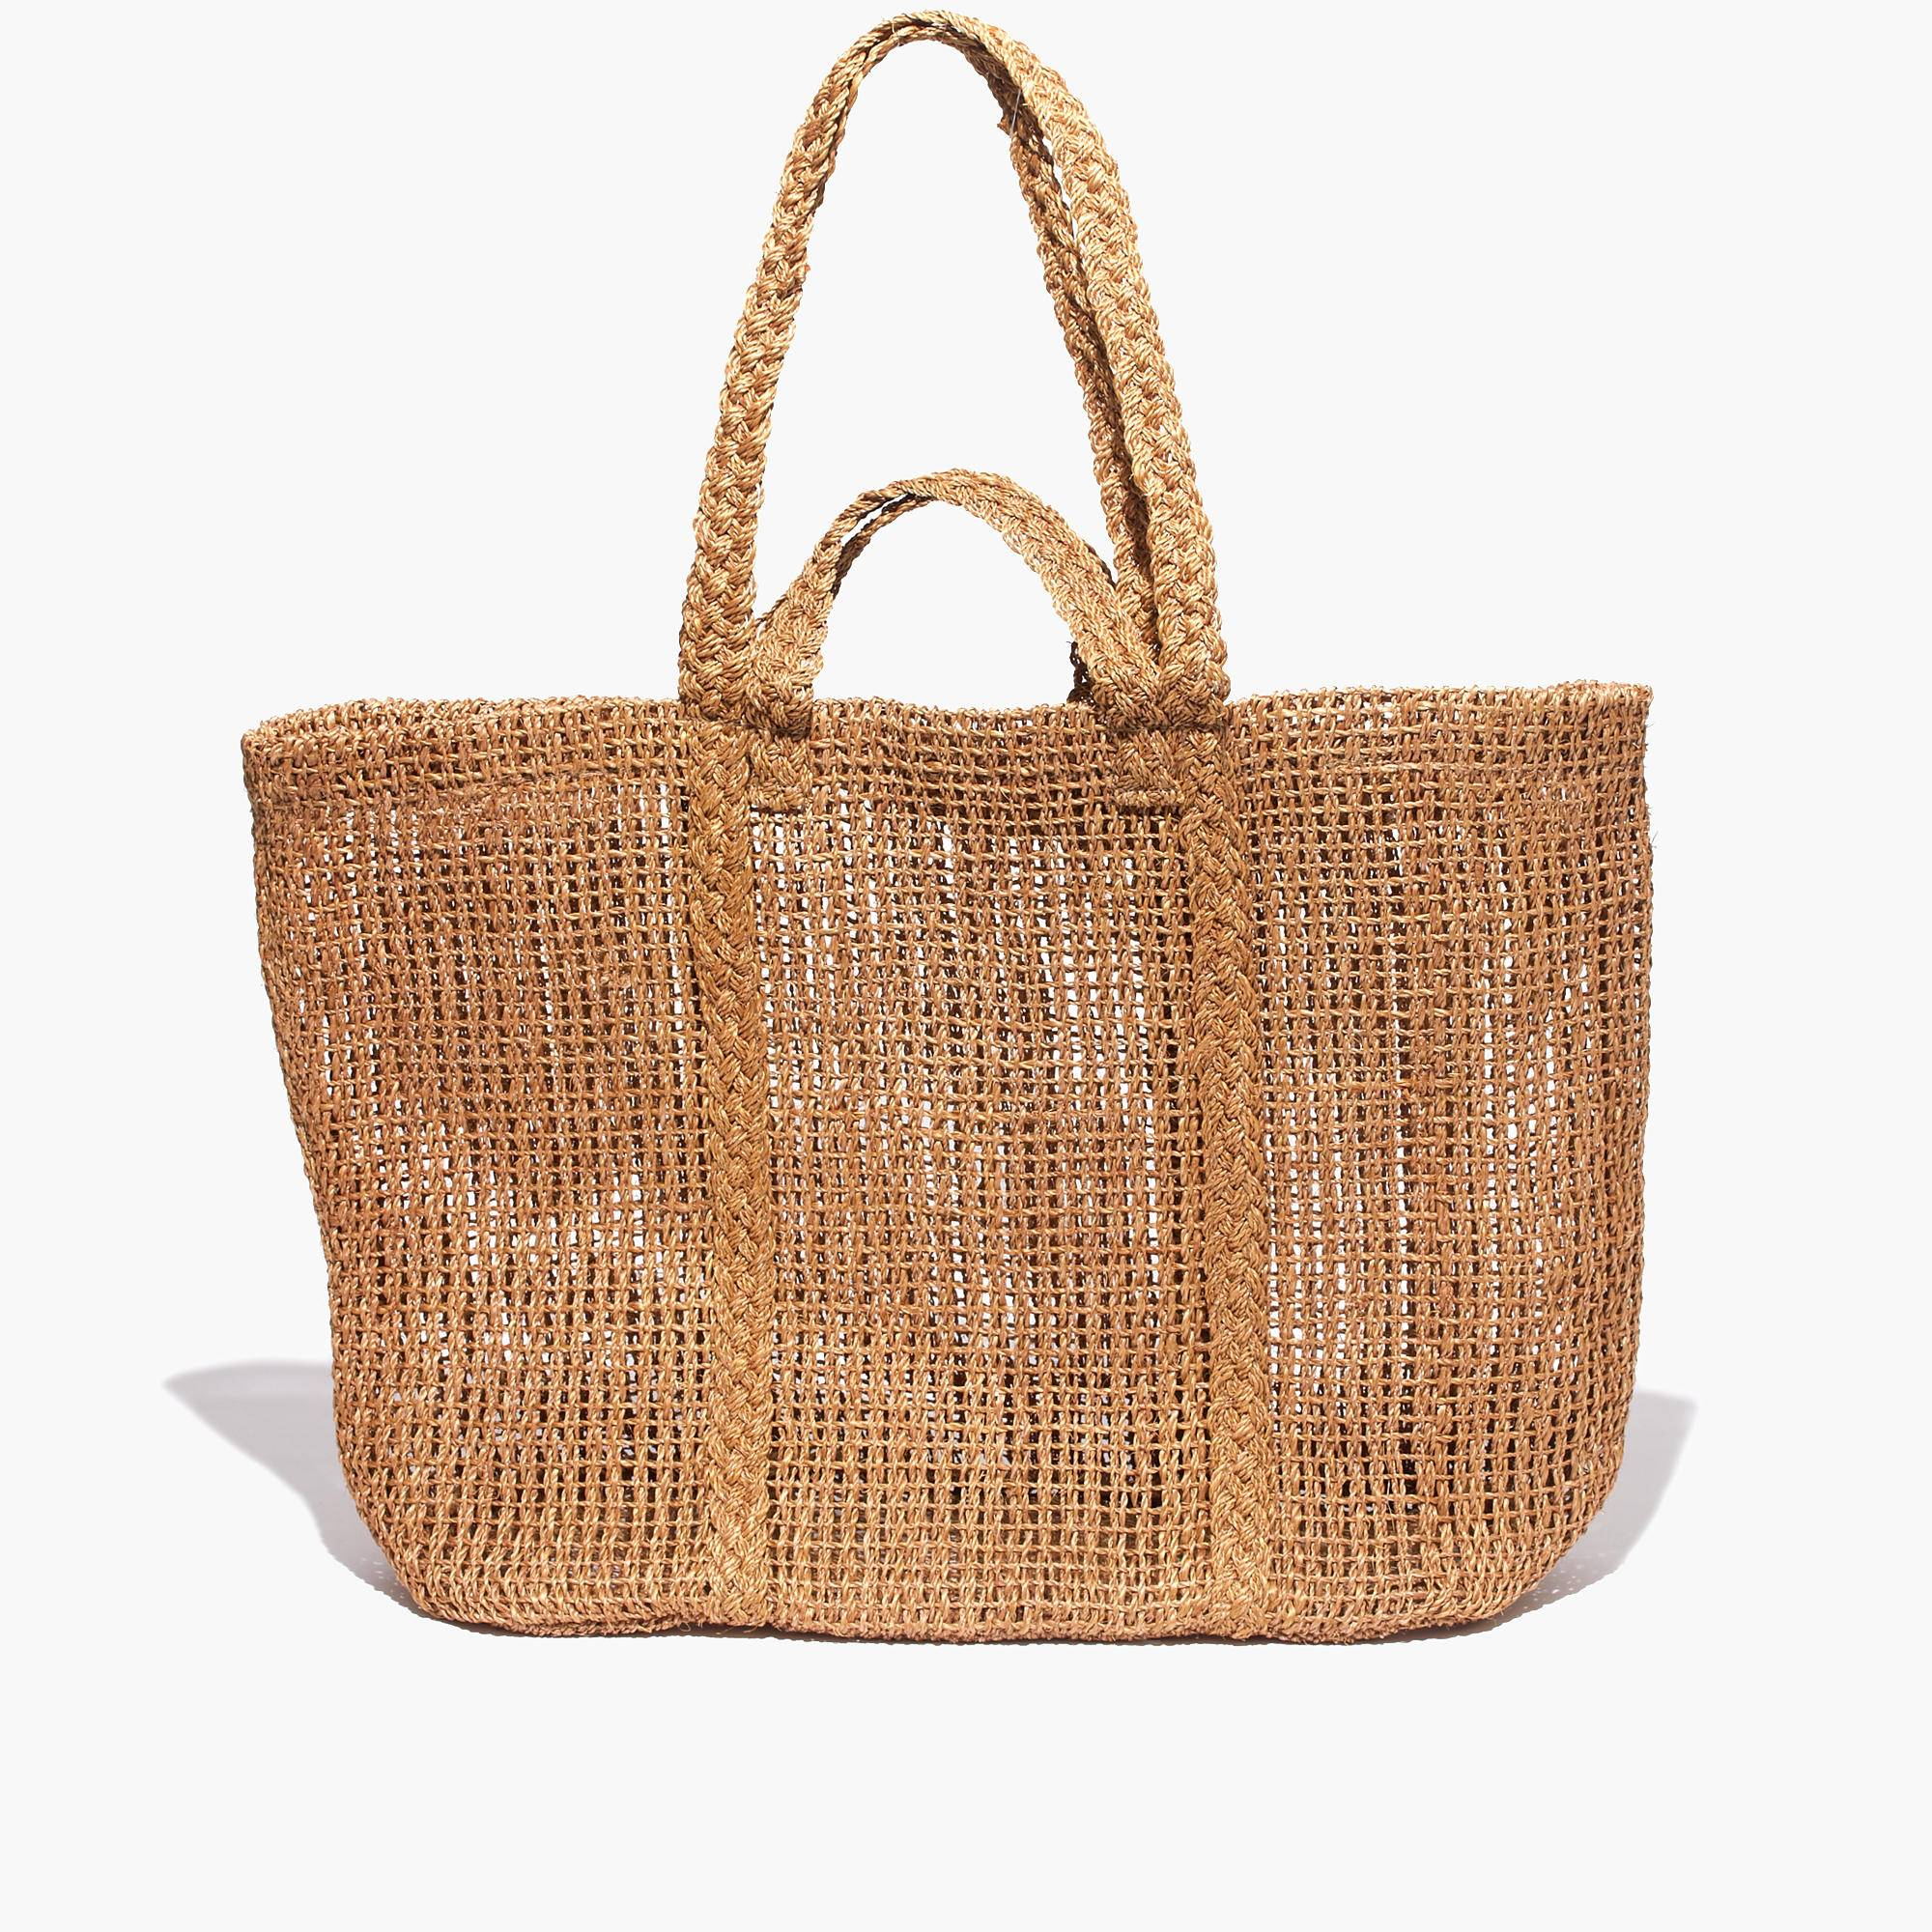 Madewell Corsica Straw Beach Tote 59 50